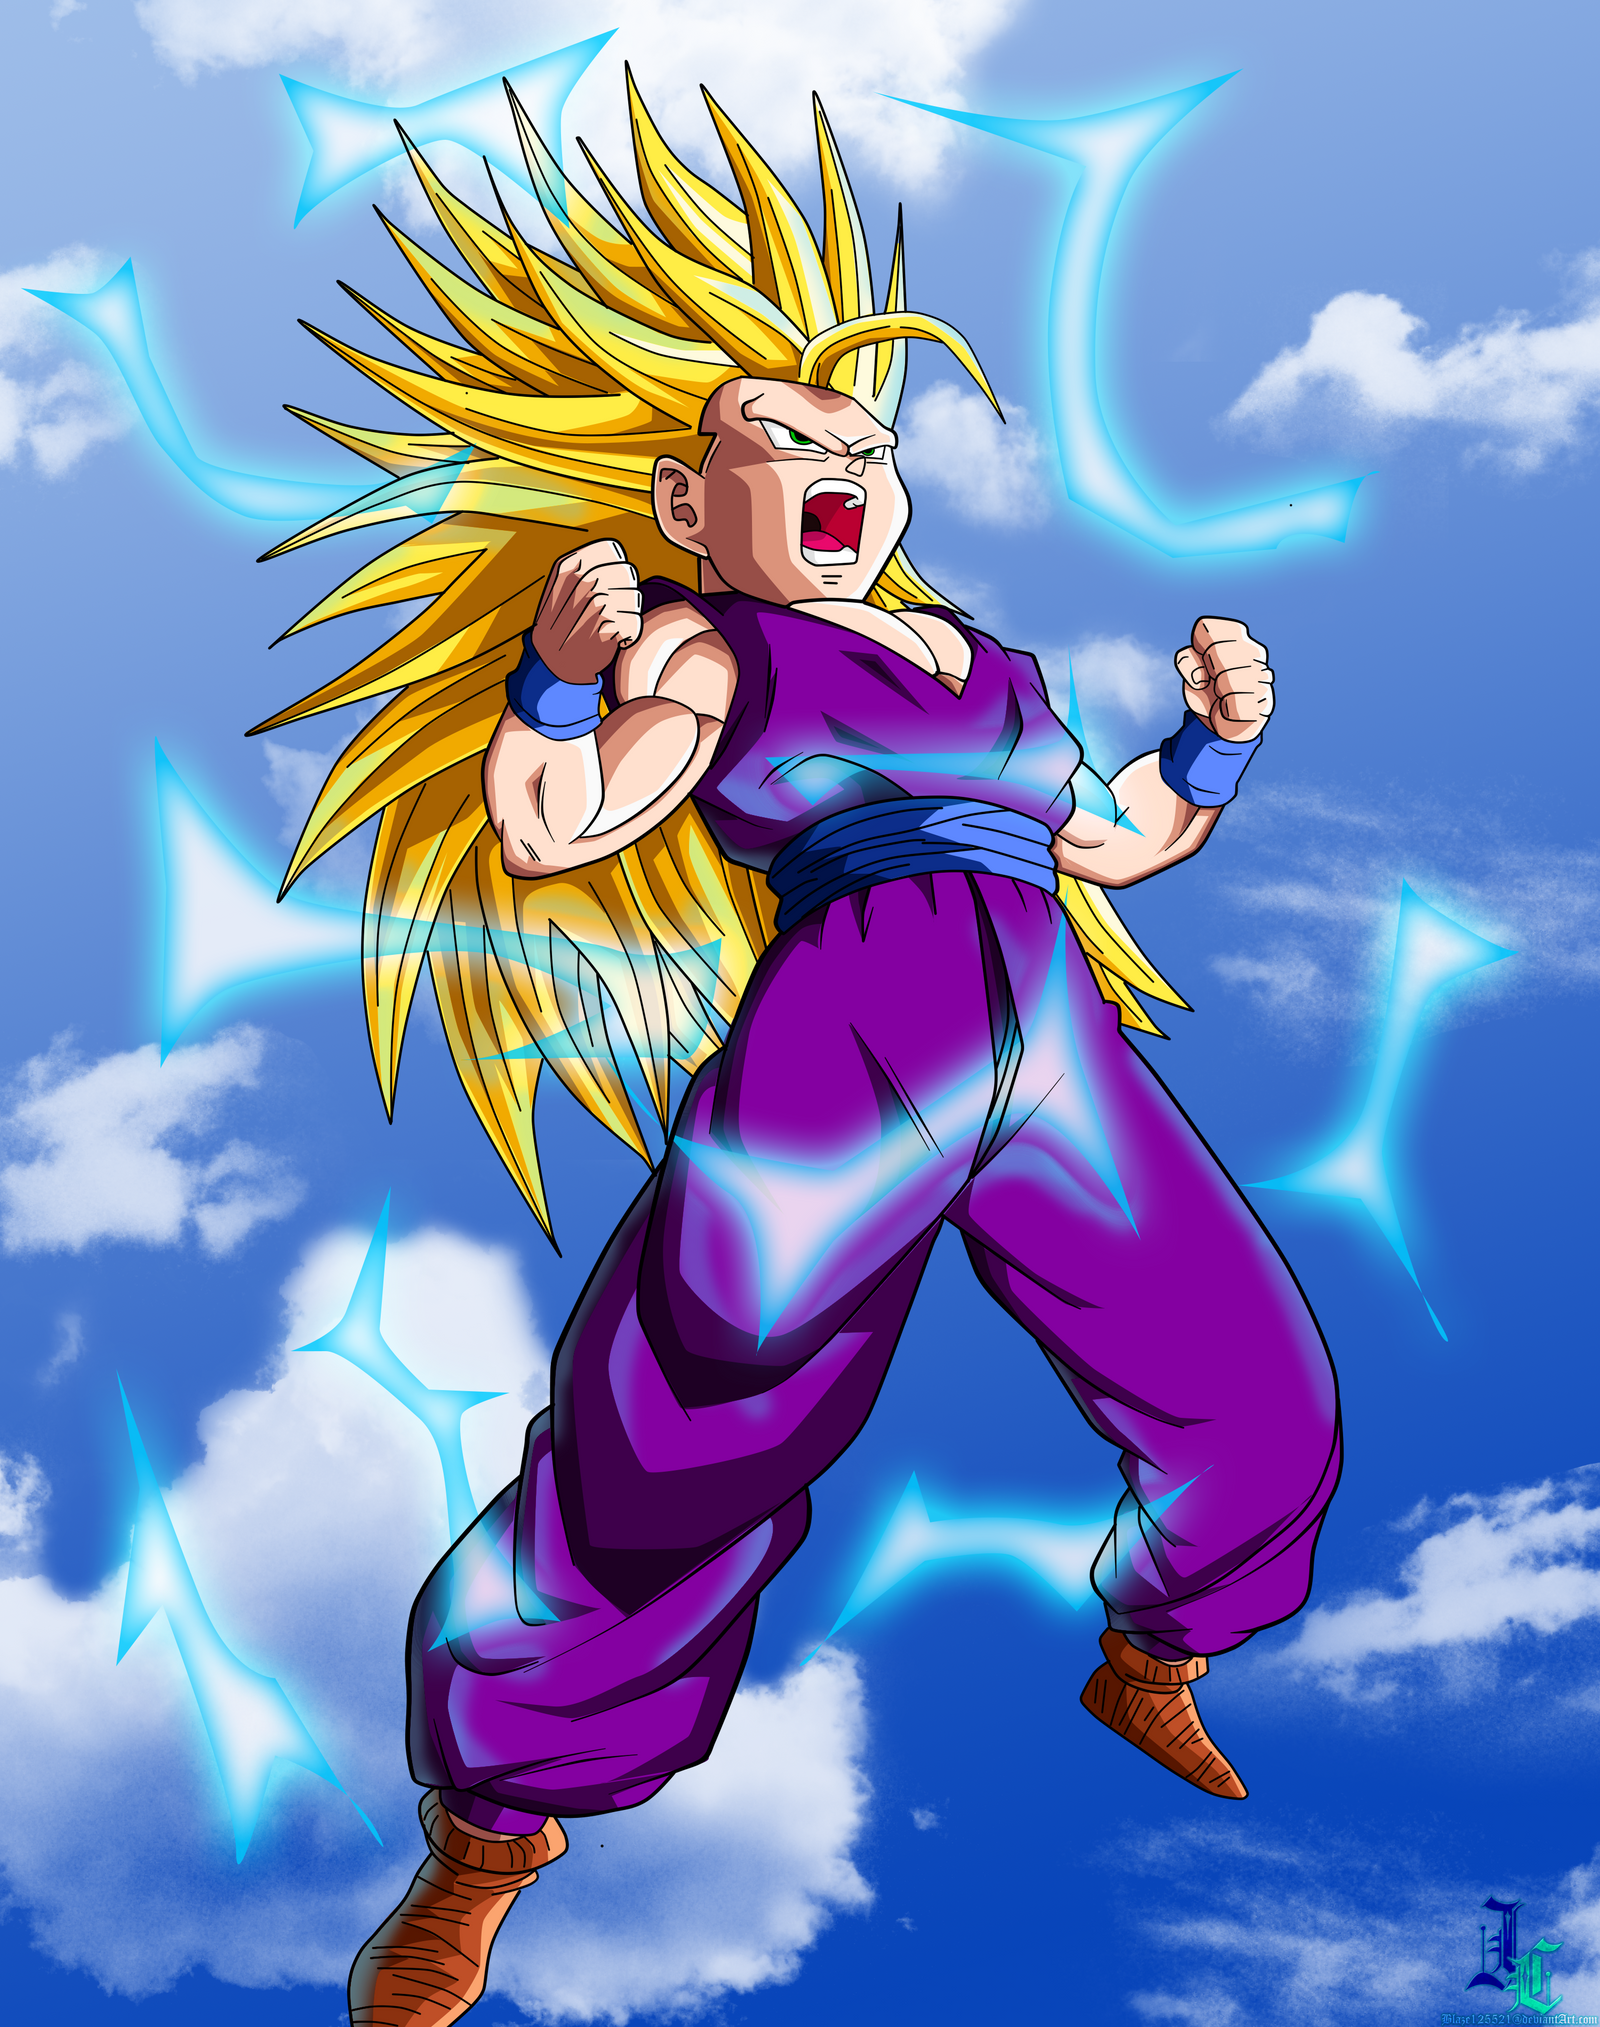 1000 images about dragonball z on pinterest dragon ball - Super saiyan 6 goku pictures ...